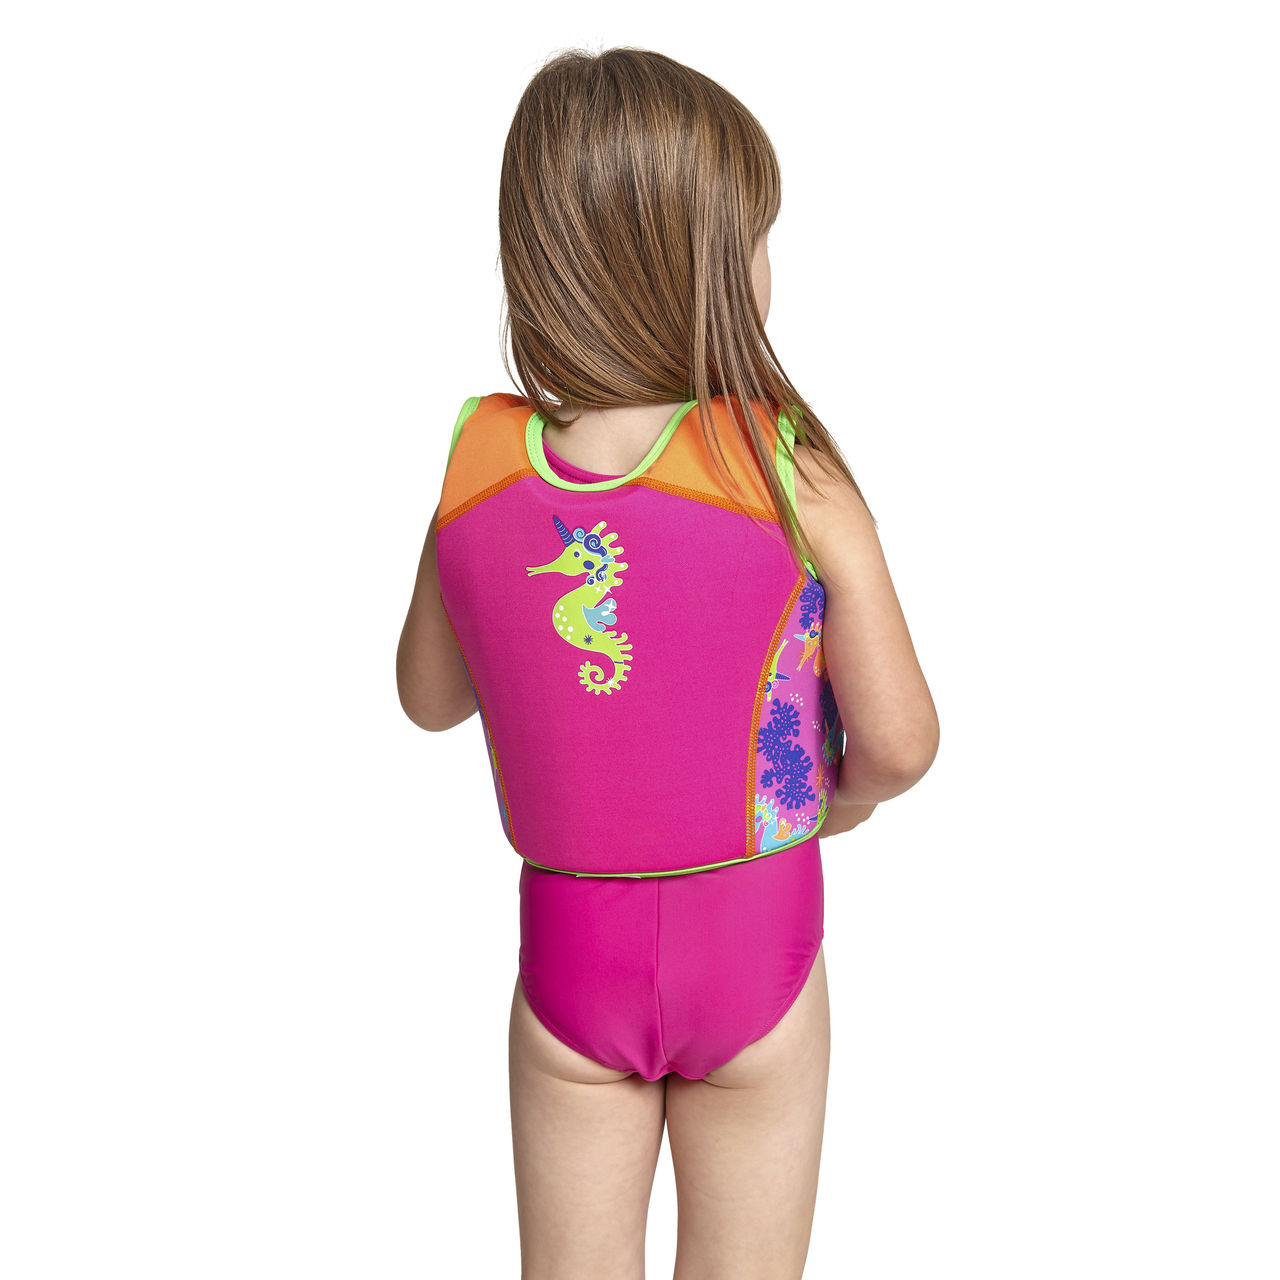 8302191_Sea--Unicorn-Swimsure-Jacket-_5789_24